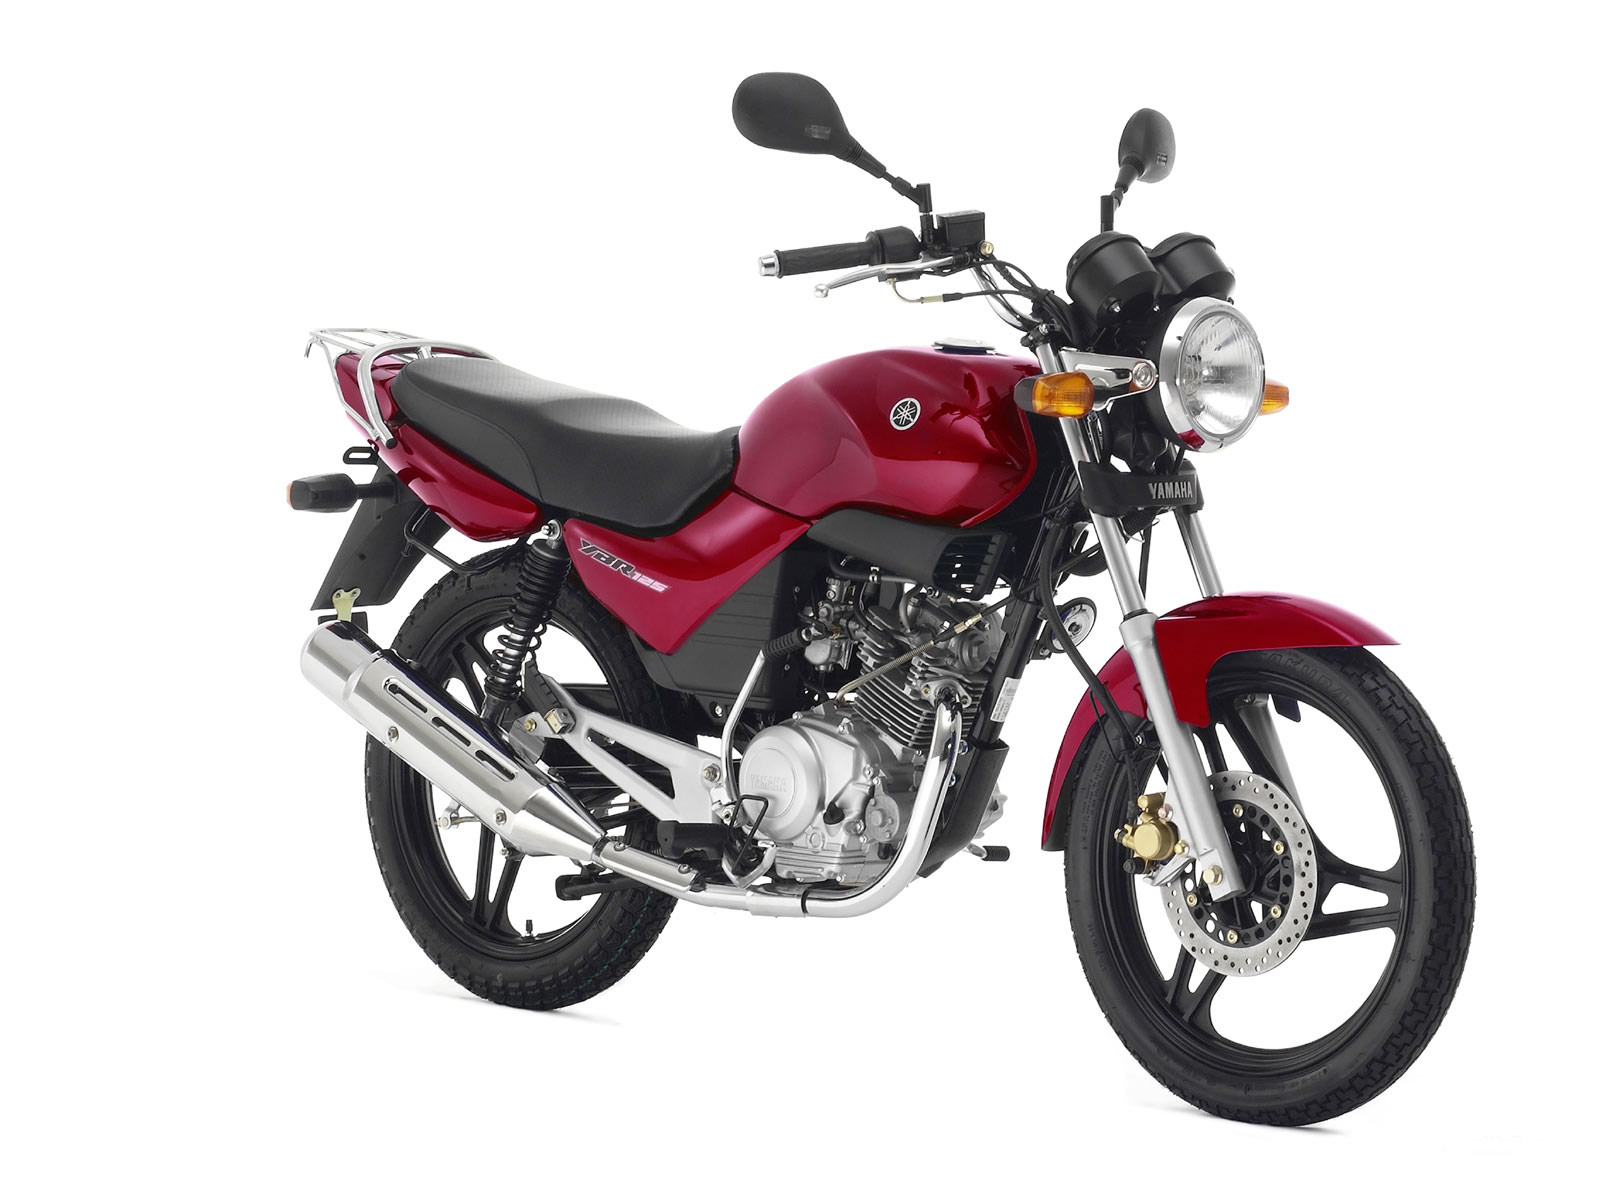 2005 yamaha ybr125 motorcycle pictures. Black Bedroom Furniture Sets. Home Design Ideas